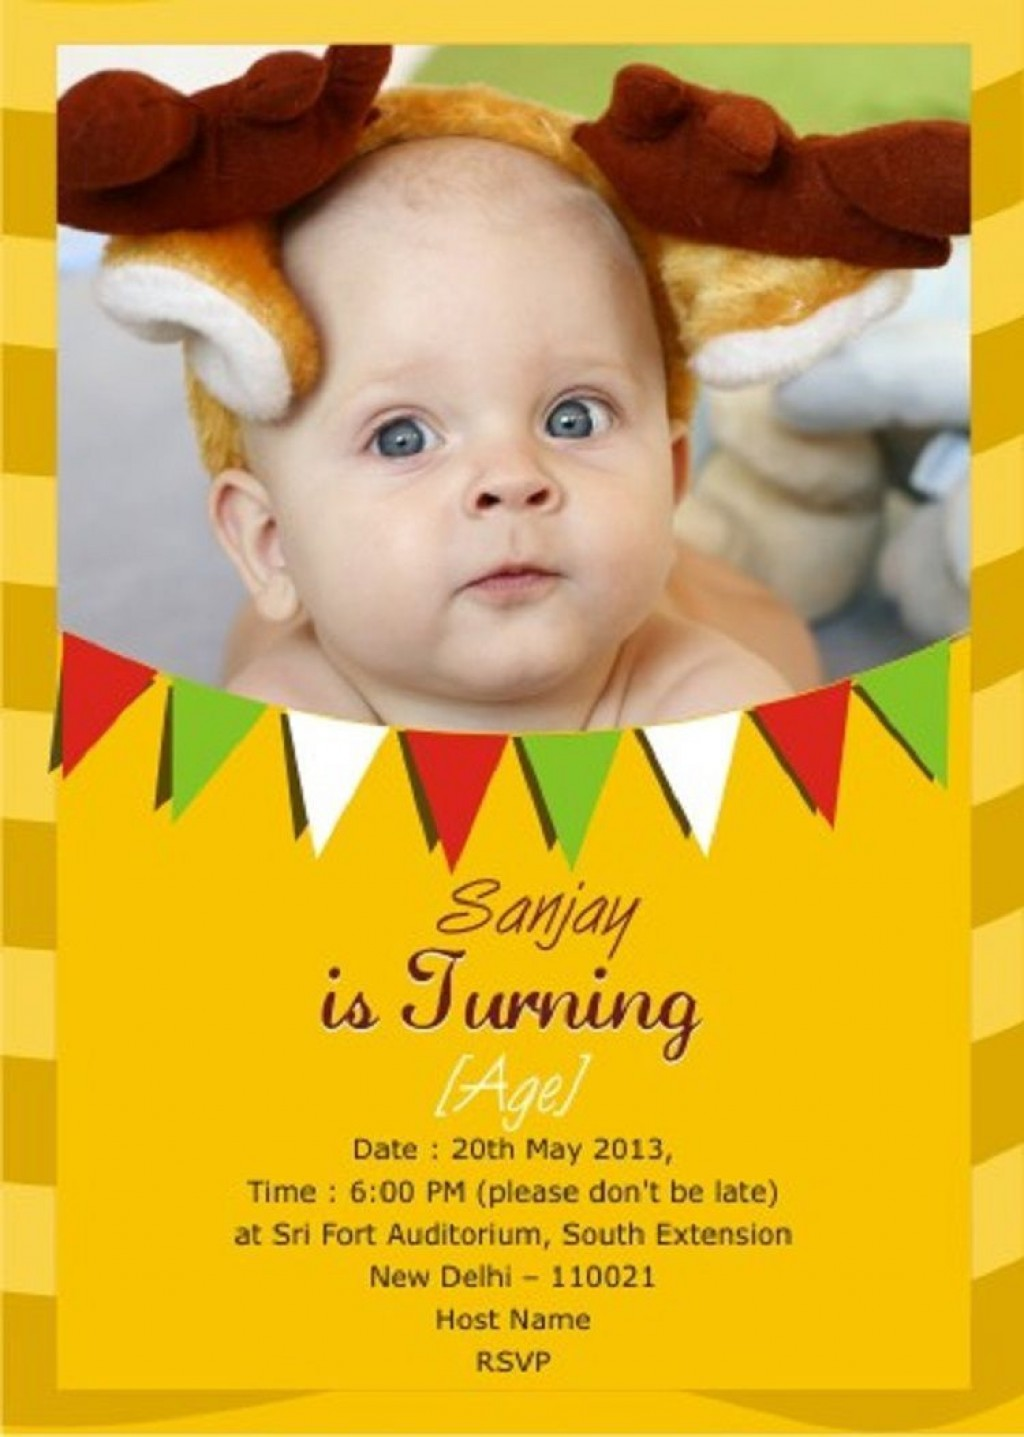 005 Staggering Free Online Birthday Invitation Card Maker With Name And Photo Design Large